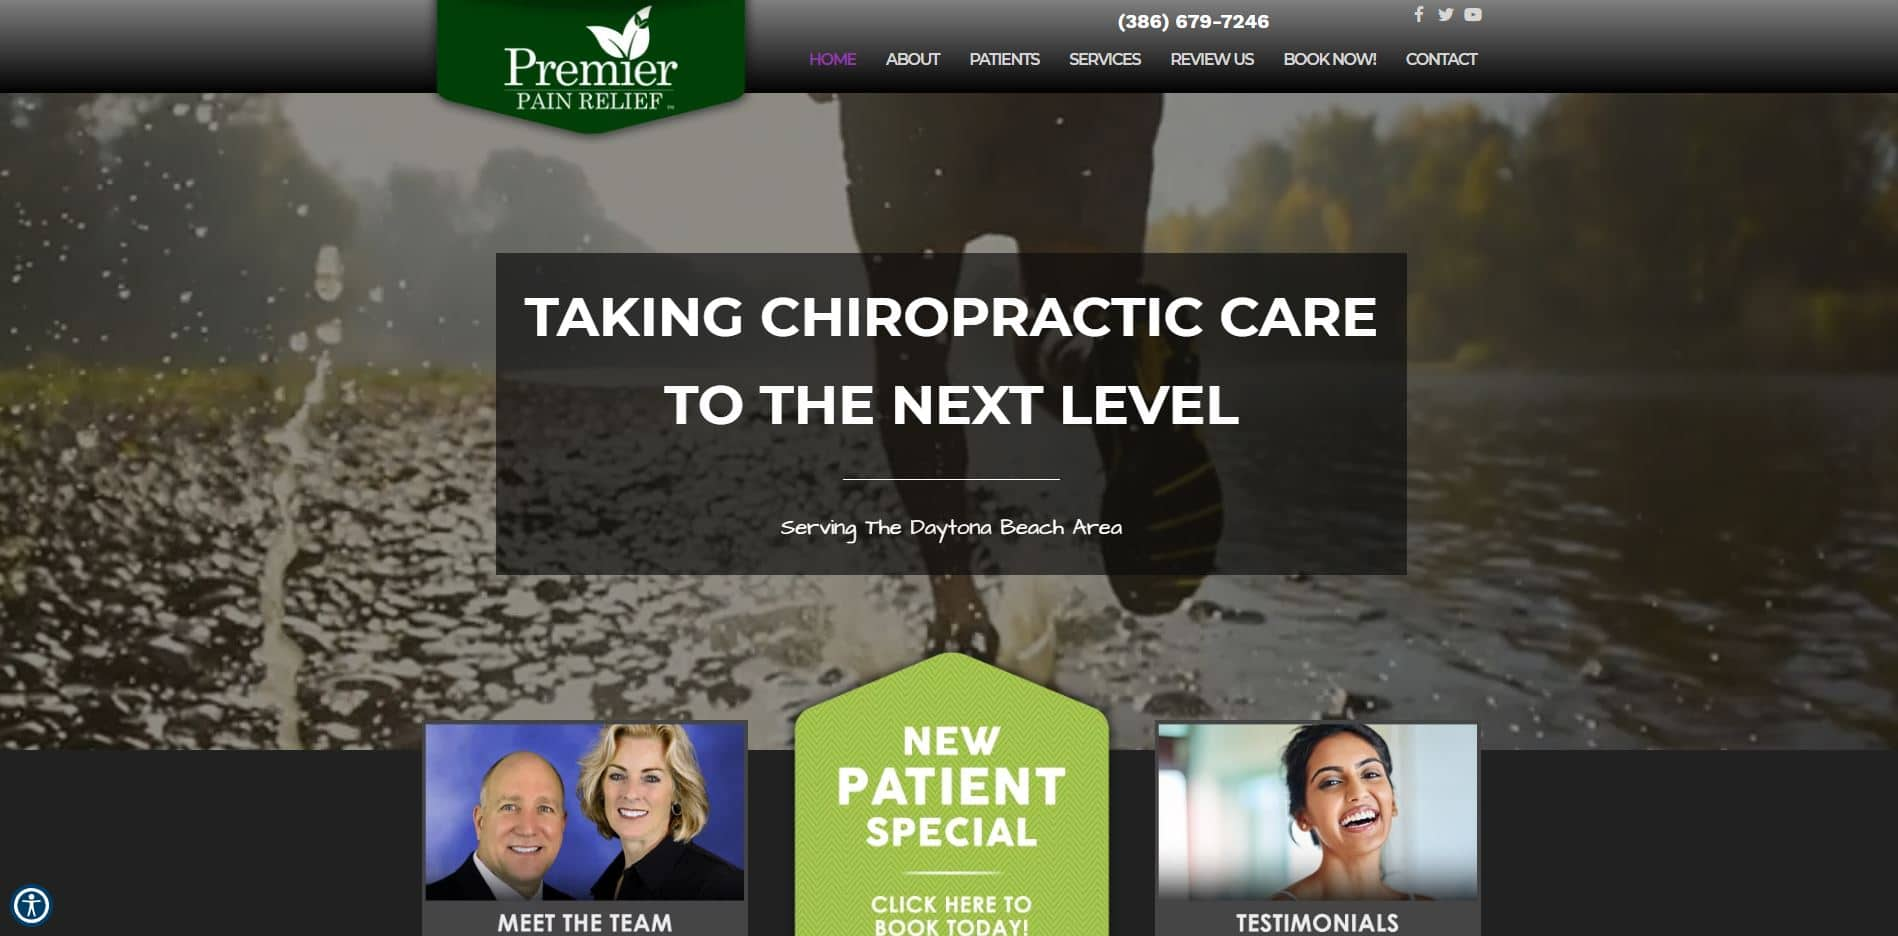 Chiropractor in Daytona Beach